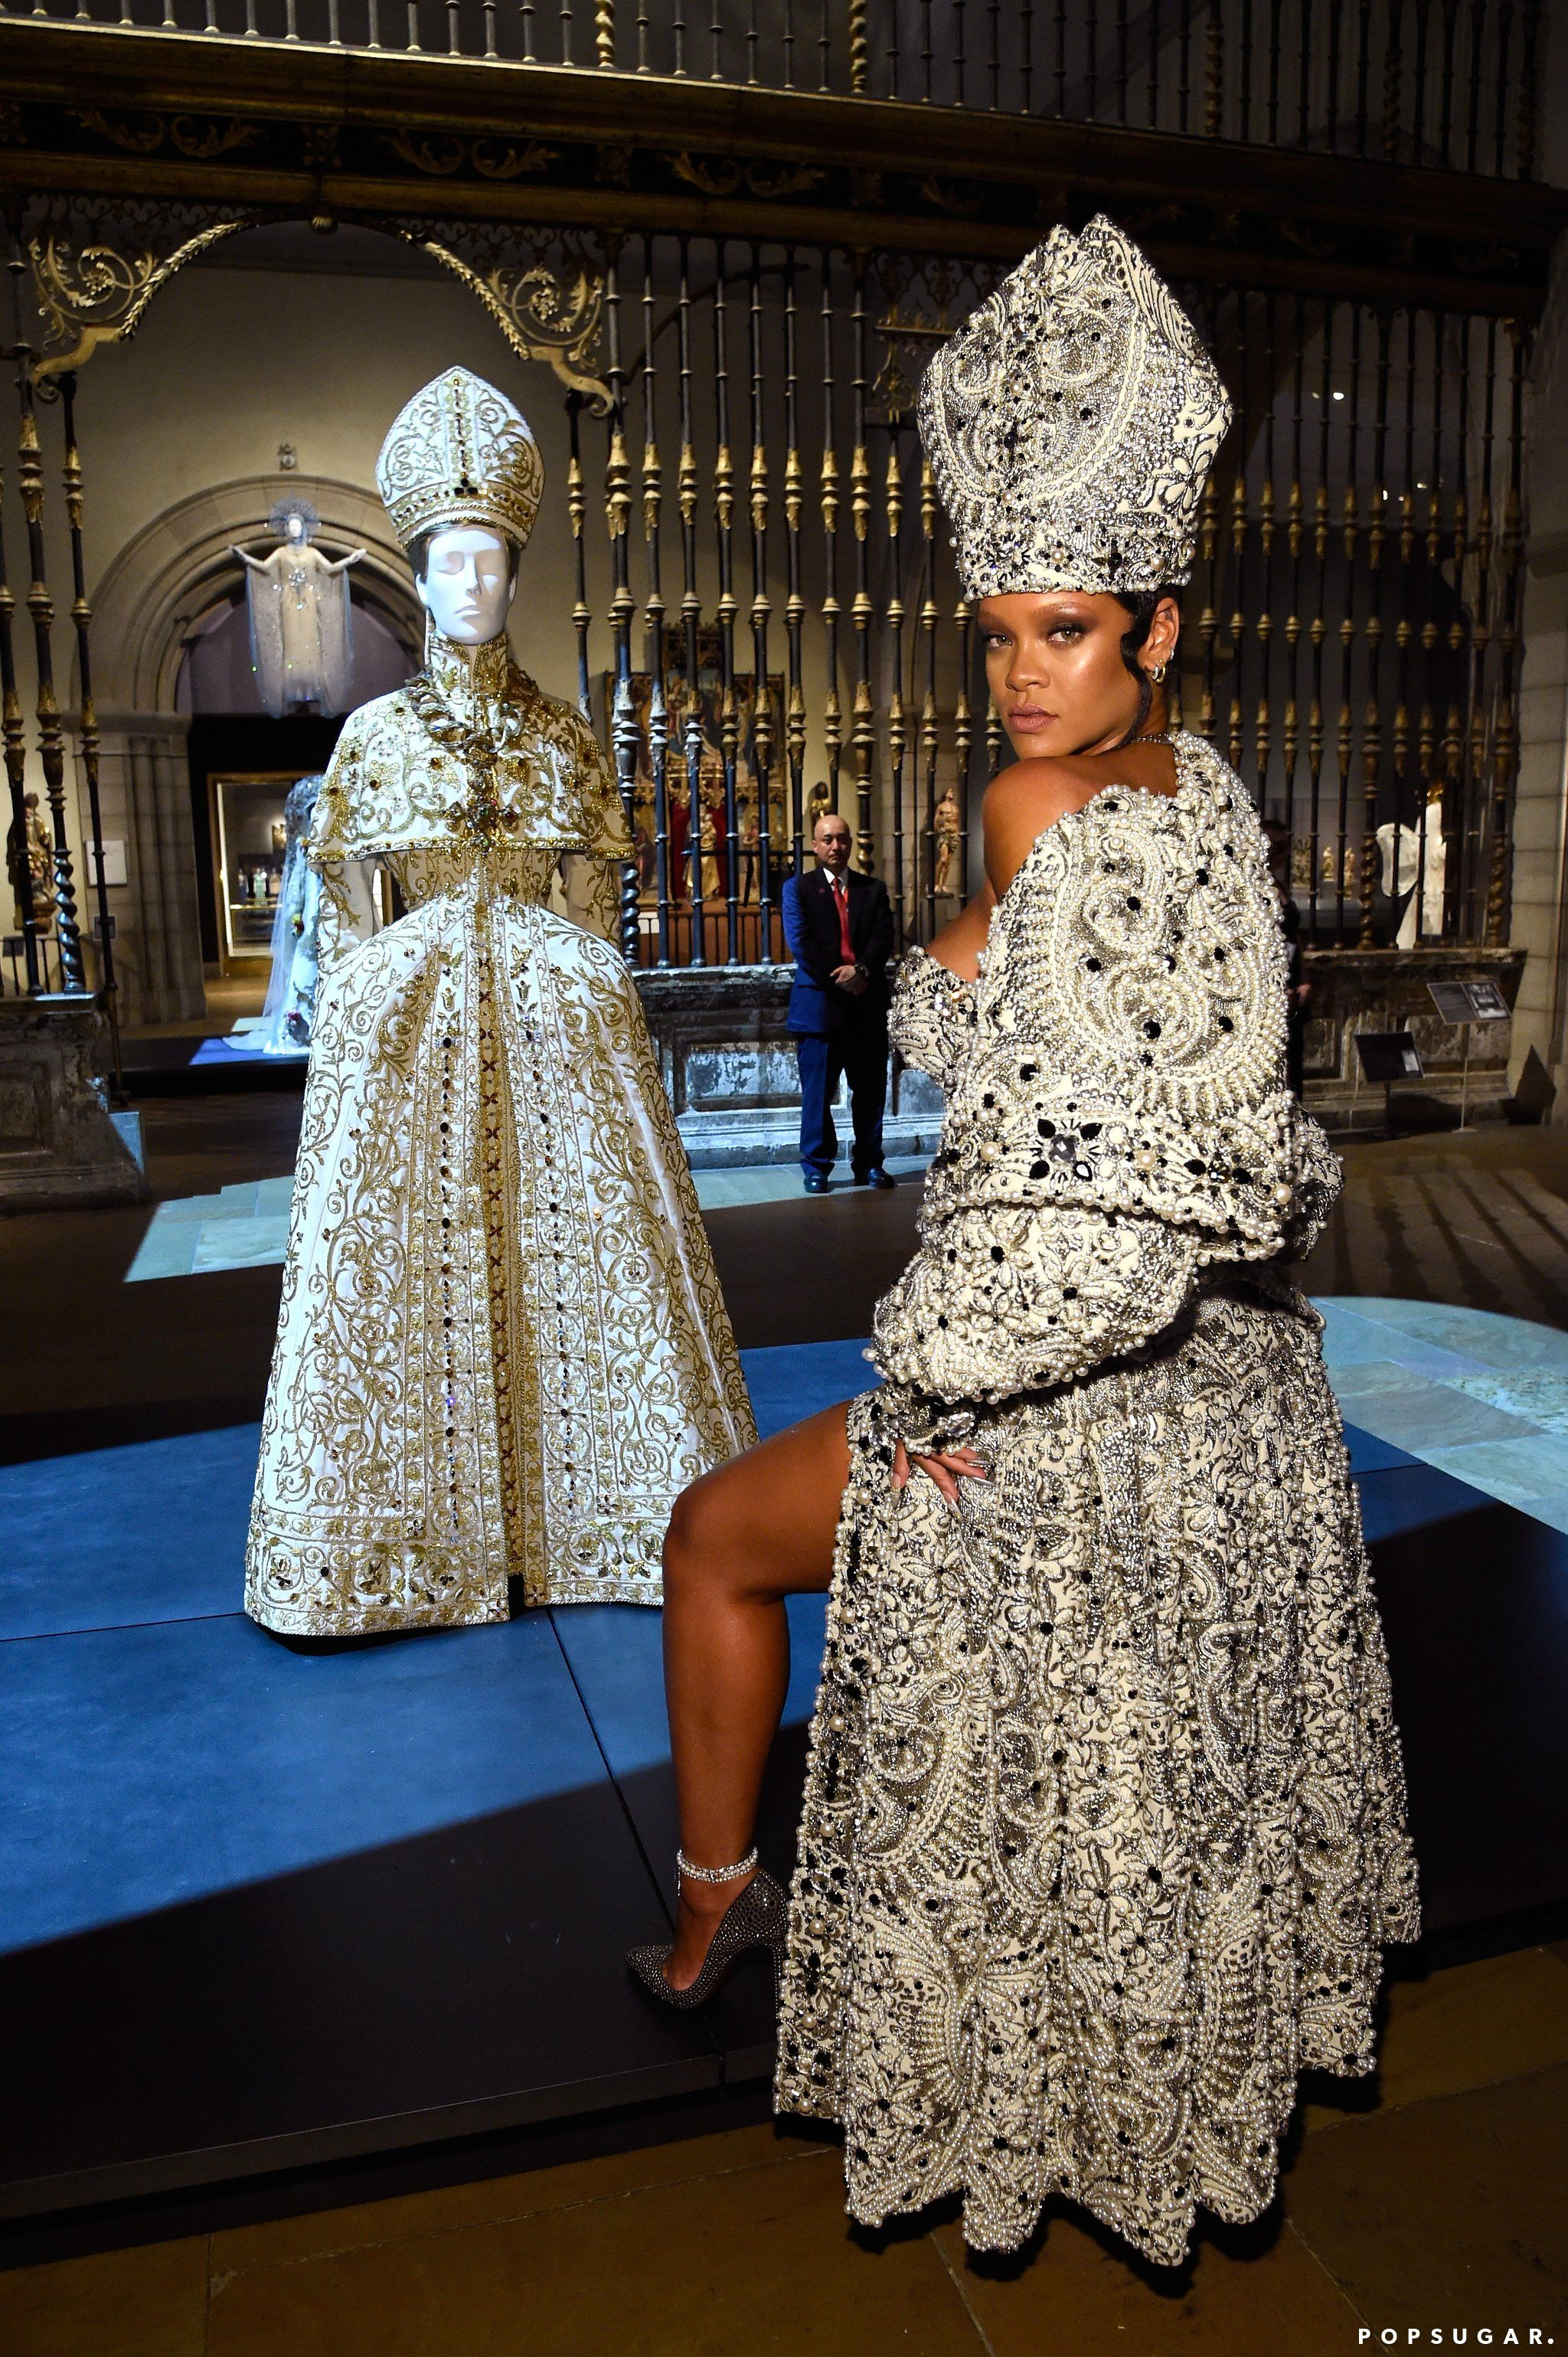 b25748966b7 Rihanna Literally Dressed Like the Pope at the Met Gala